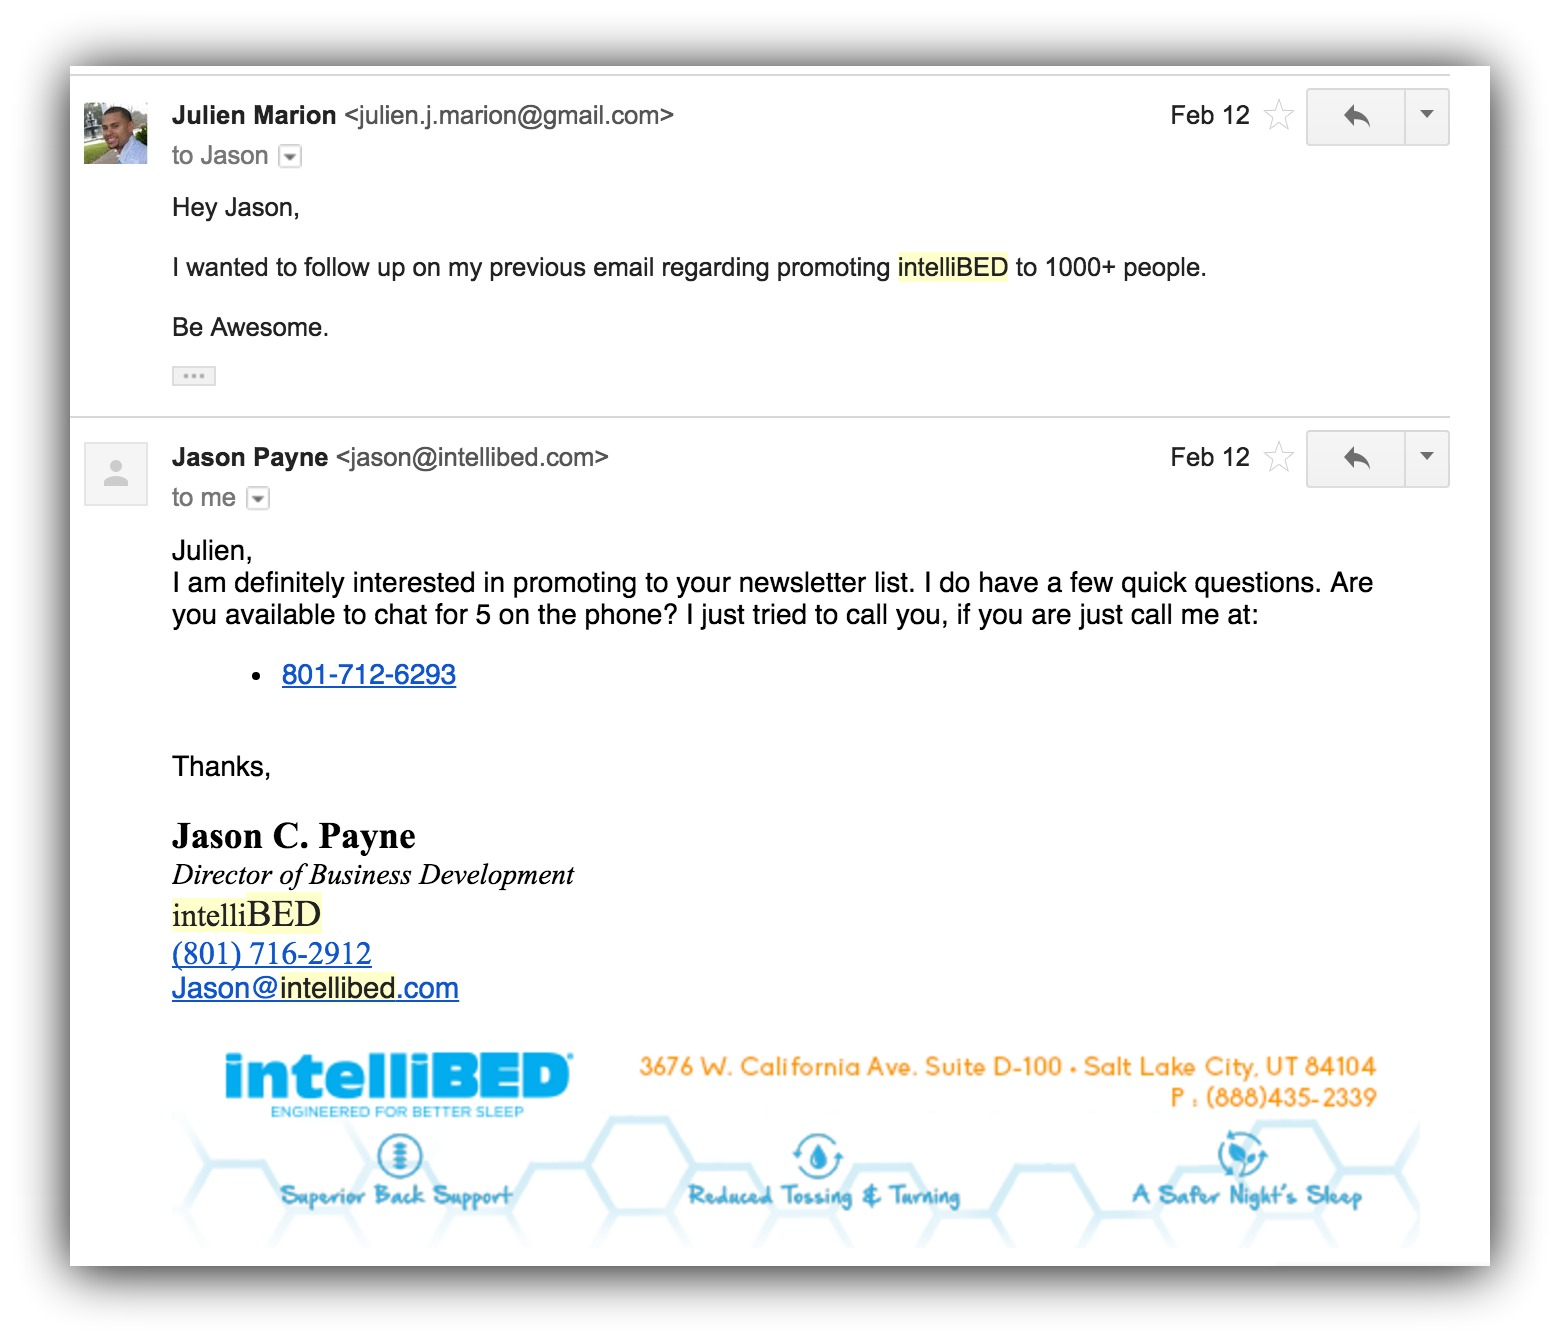 Screenshot showing an email and a reply